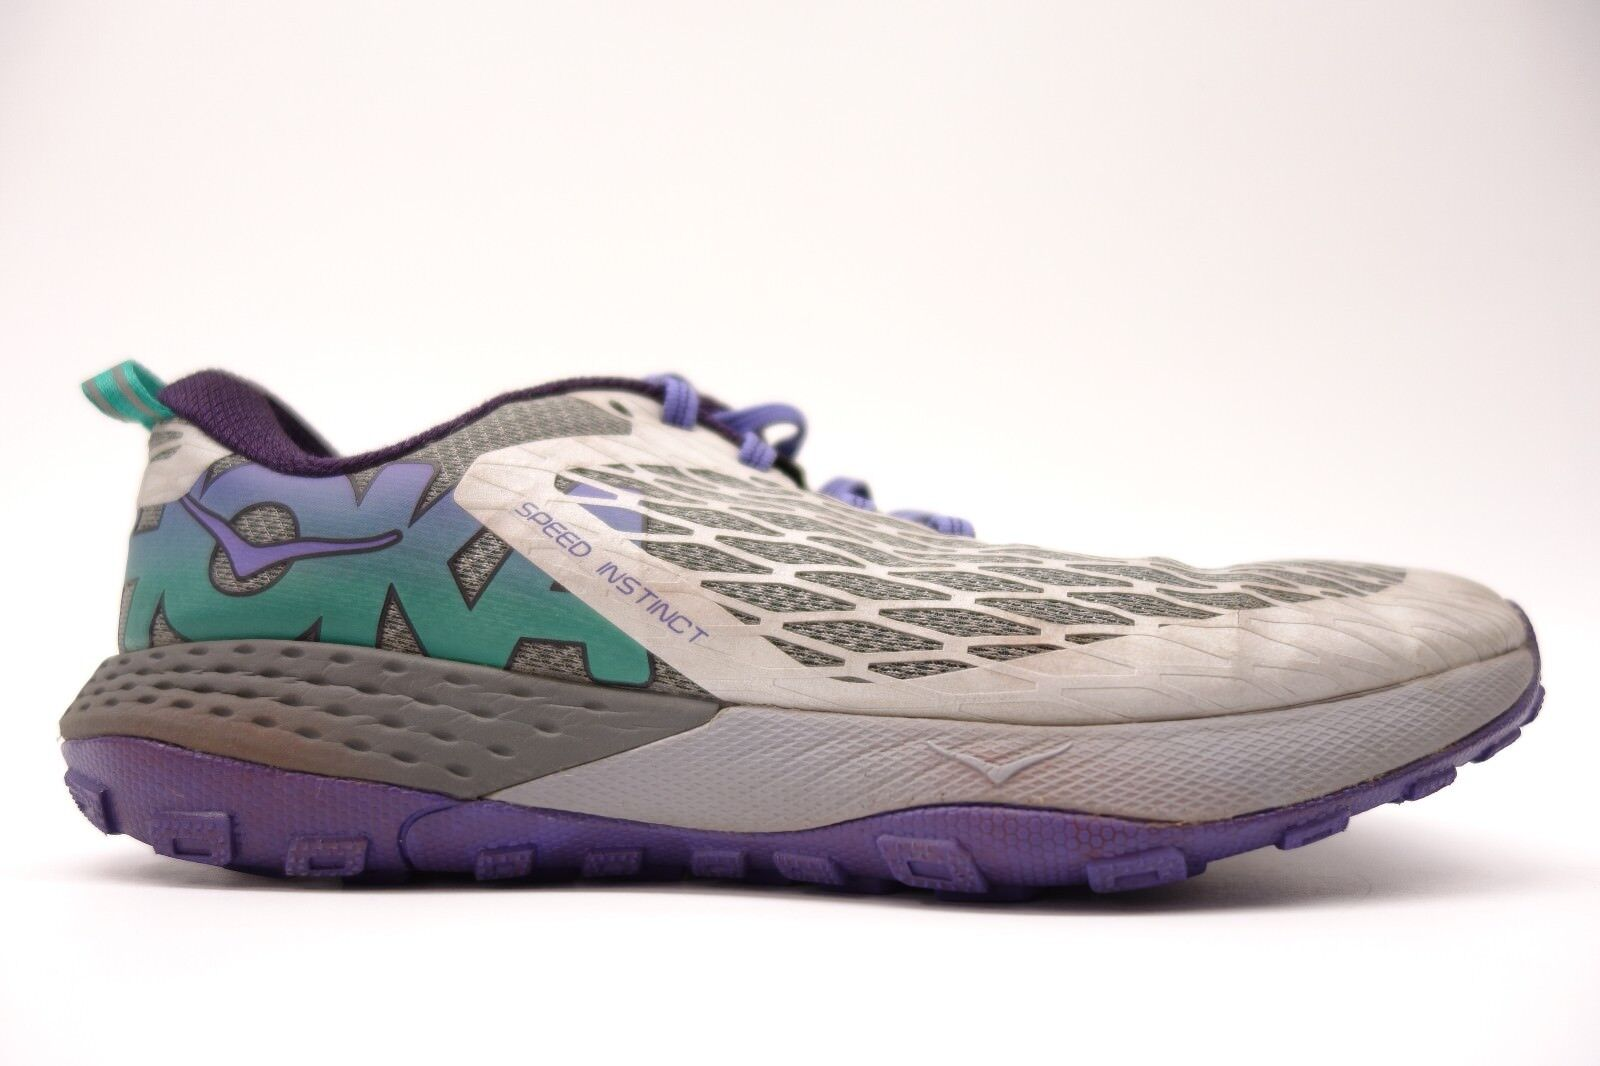 Hoka One One Womens Speed Instinct Lightweight Athletic Running Shoes Size 8